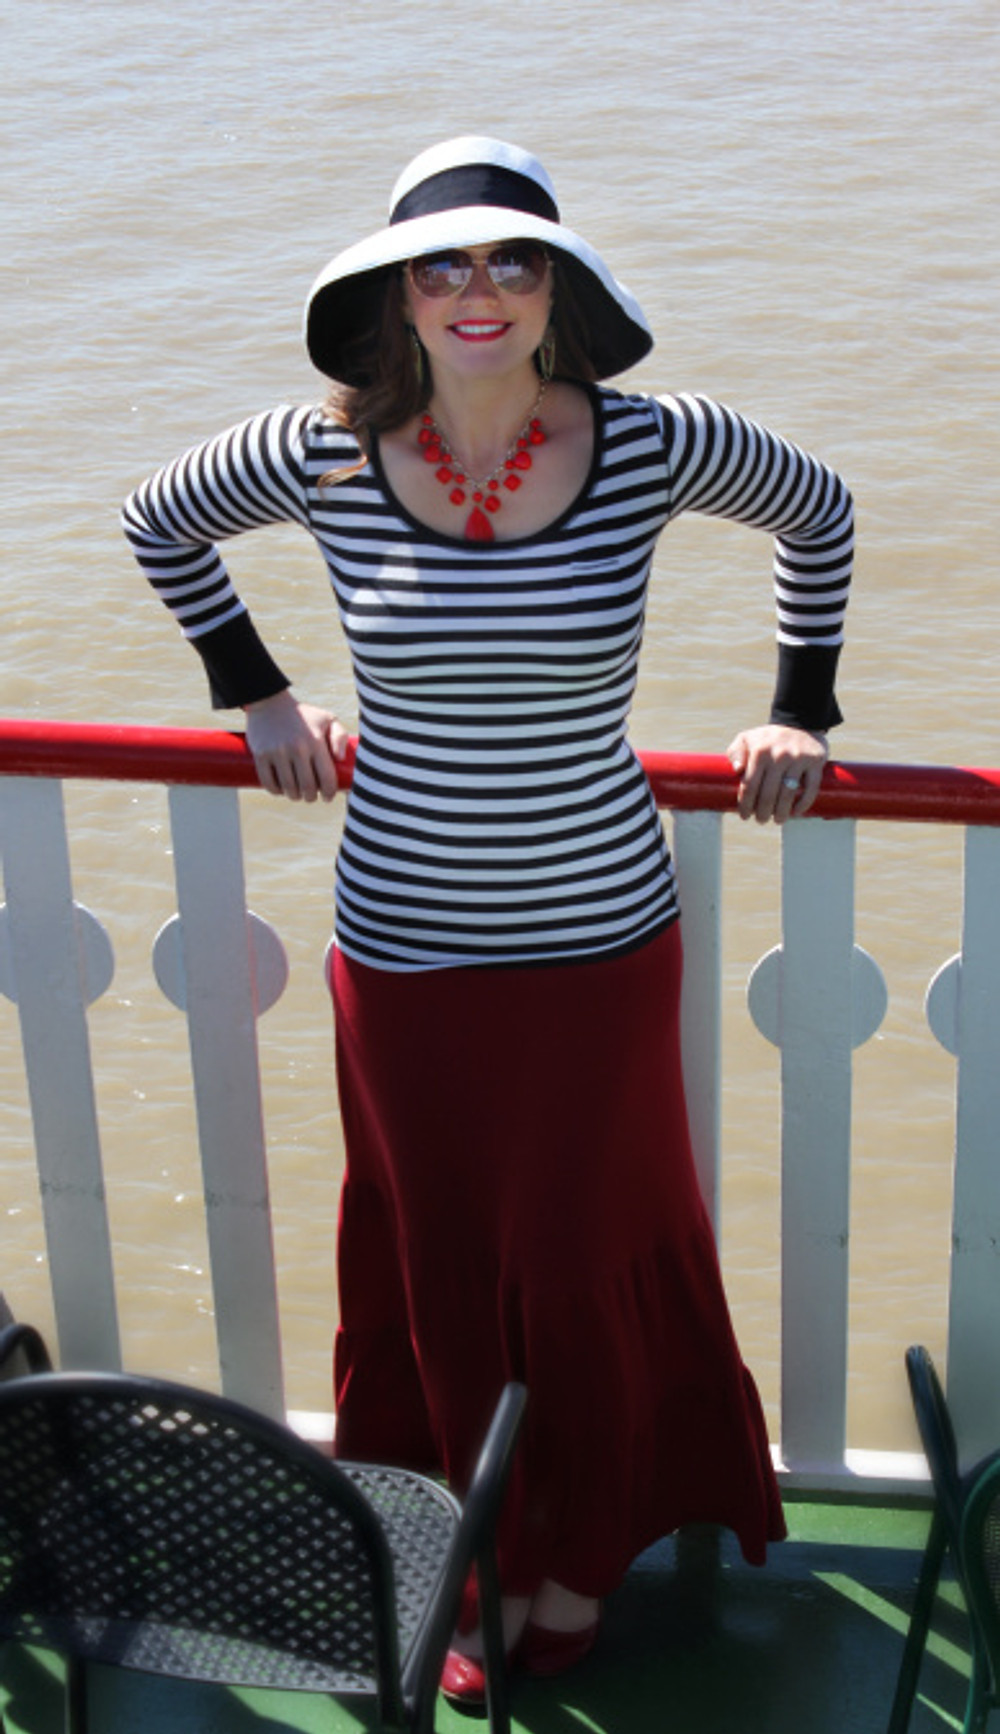 Enjoying some sun on our Jazz Lunch Cruise aboard the Natchez Steamboat.